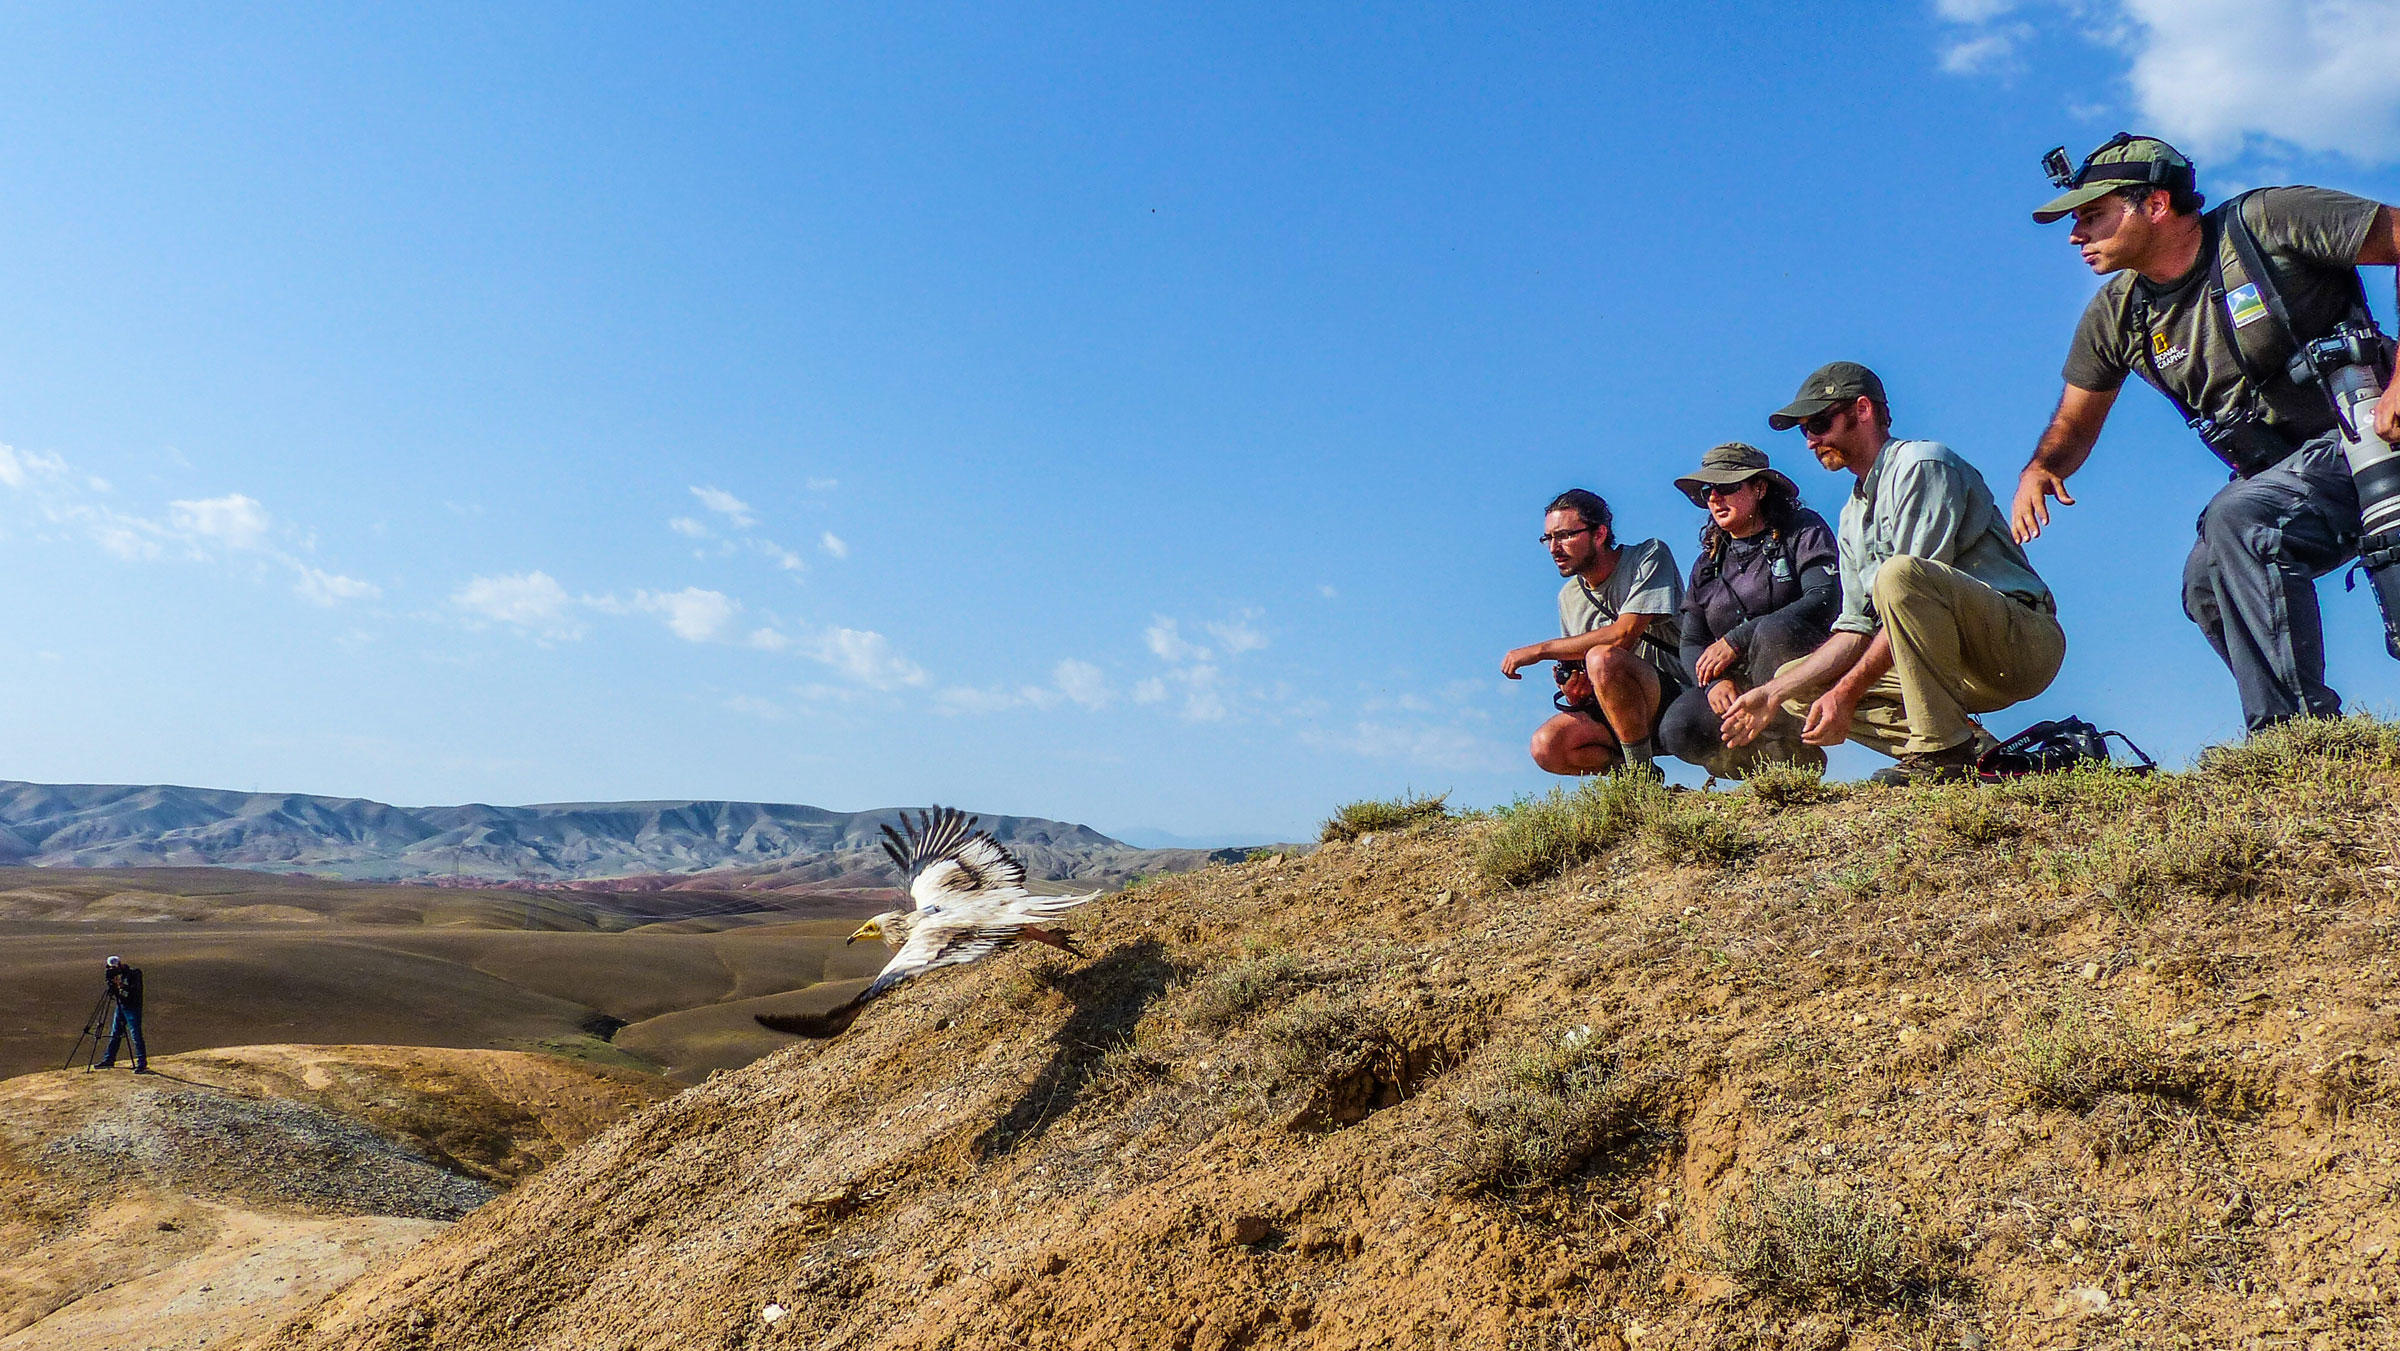 An Egyptian Vulture is released in eastern Turkey with a satellite tracking device that allows detailed monitoring of its movements. The crew (from left to right): Cagan Sekercioglu, Evan Buechley, Lale Aktay, and Joshua Horns. Kayahan Argikaya